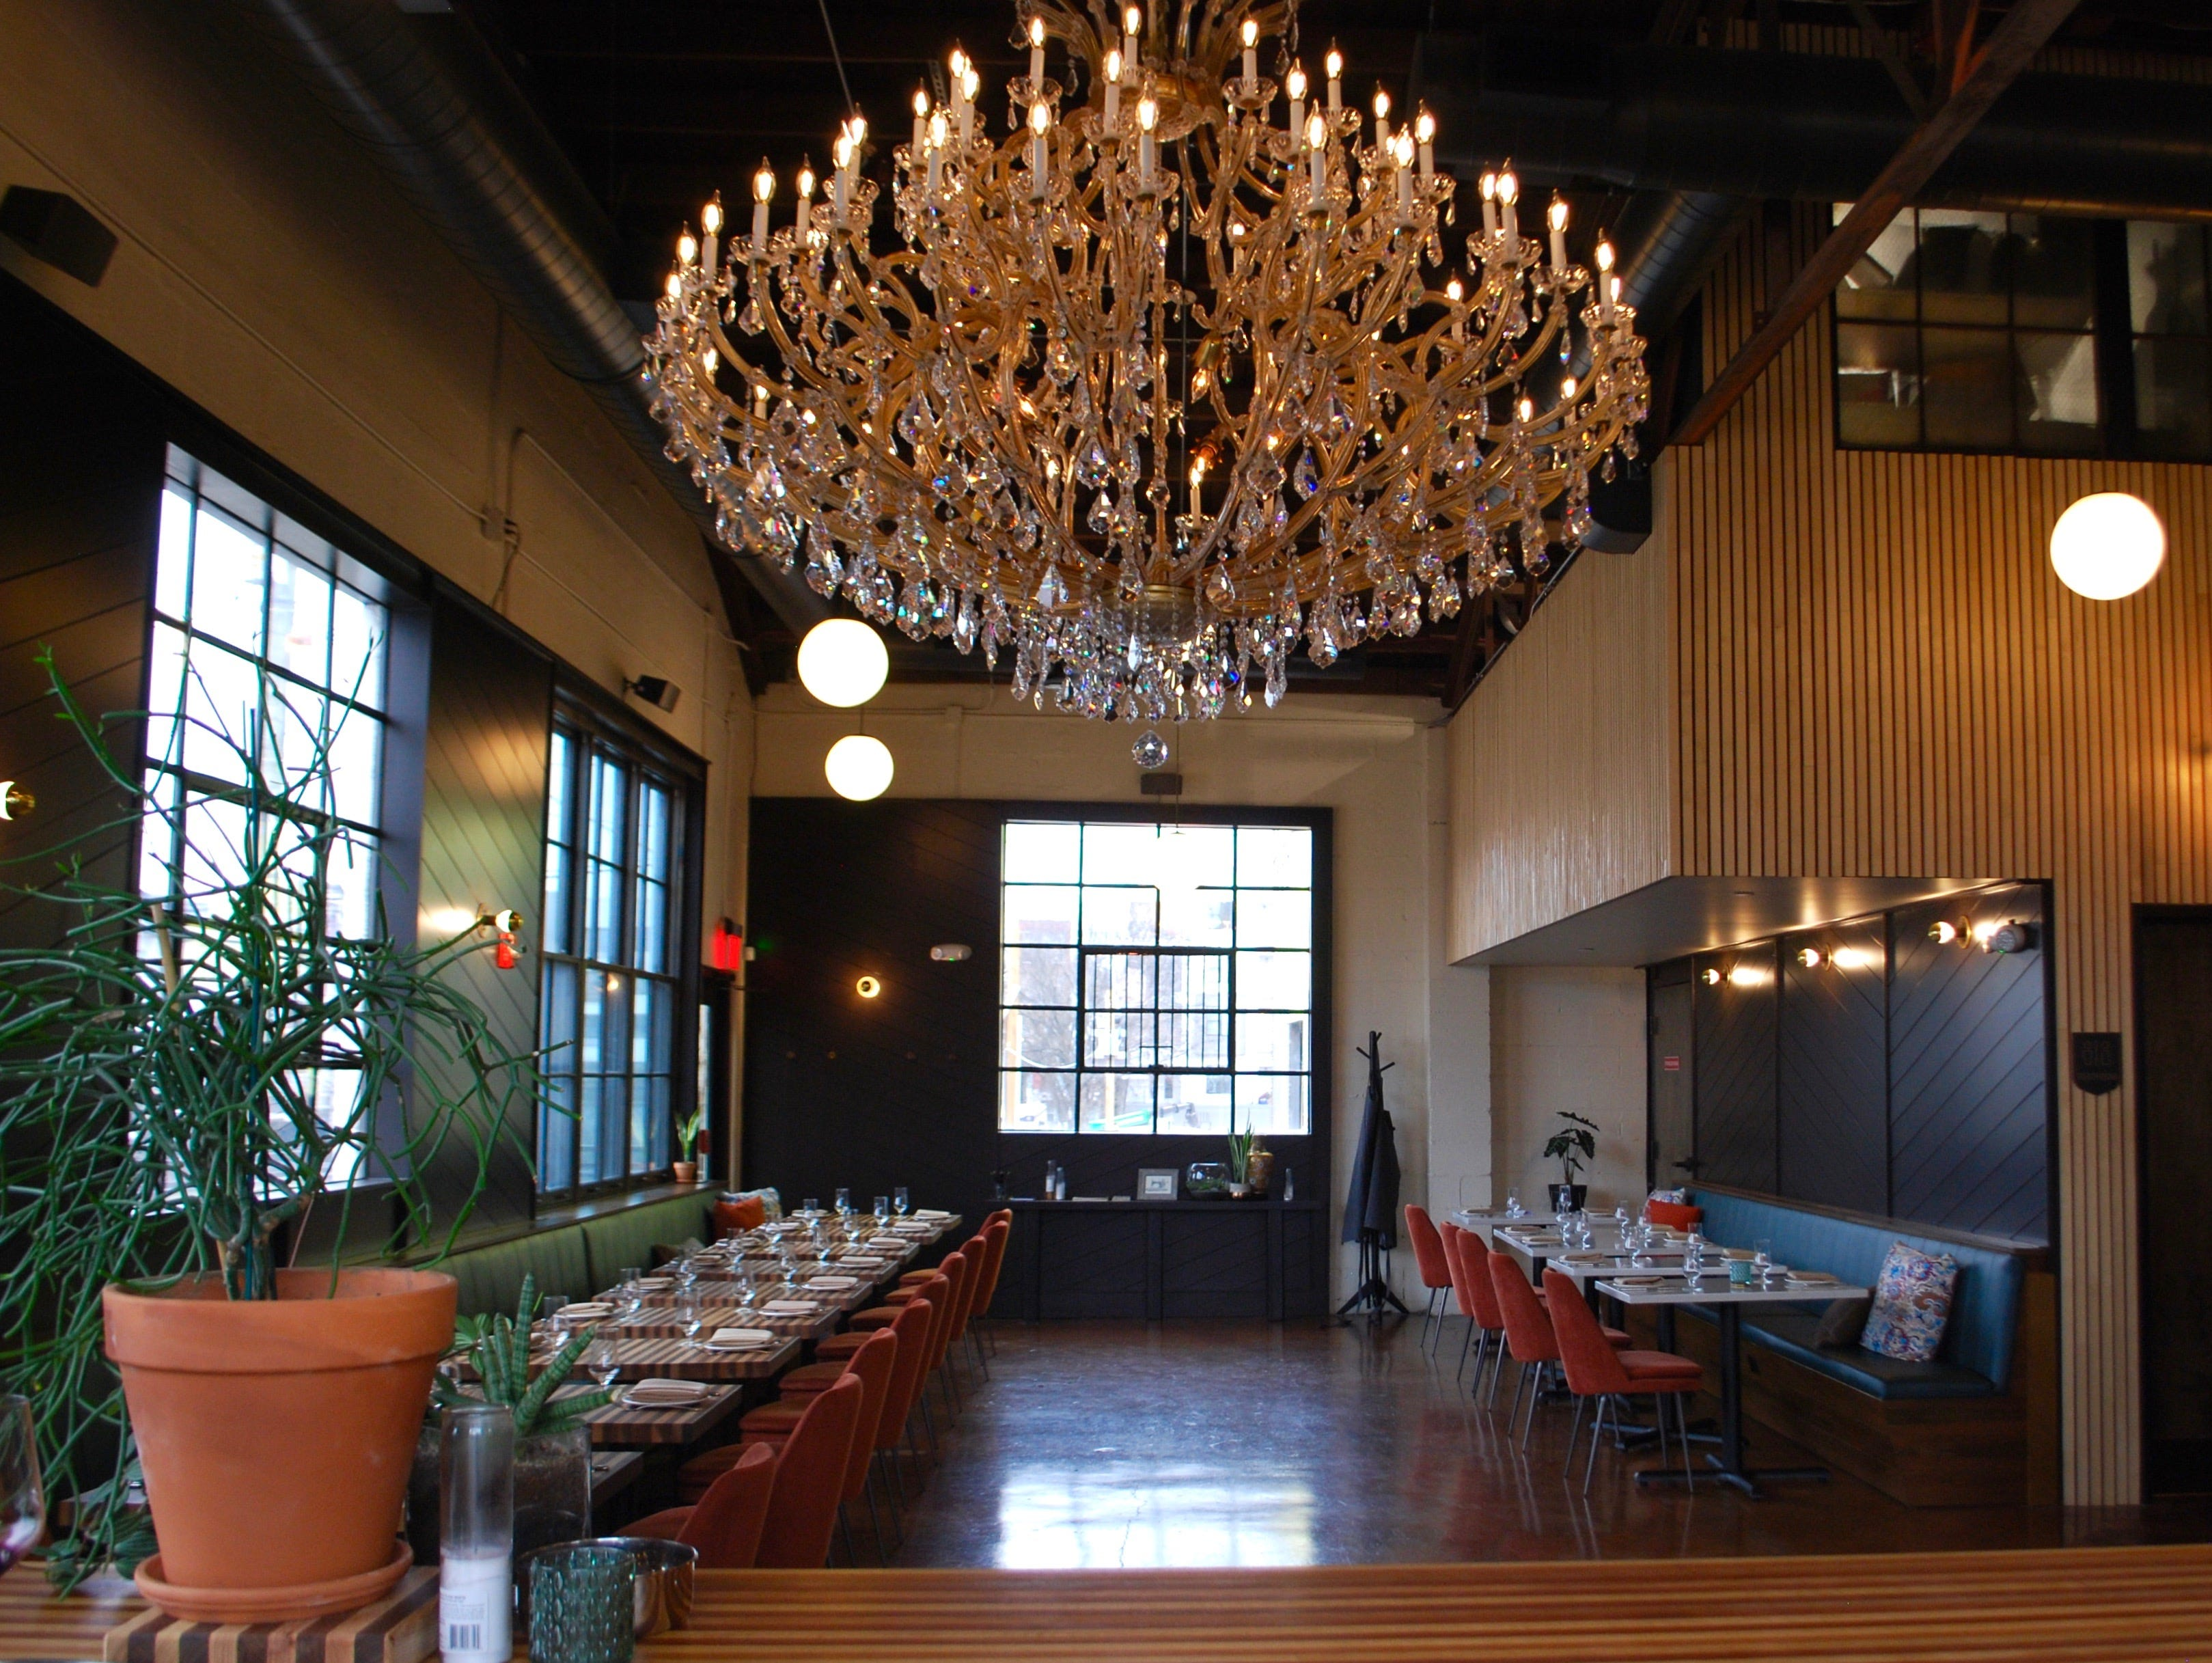 View of the dining room from the bar, including the family heirloom chandelier.